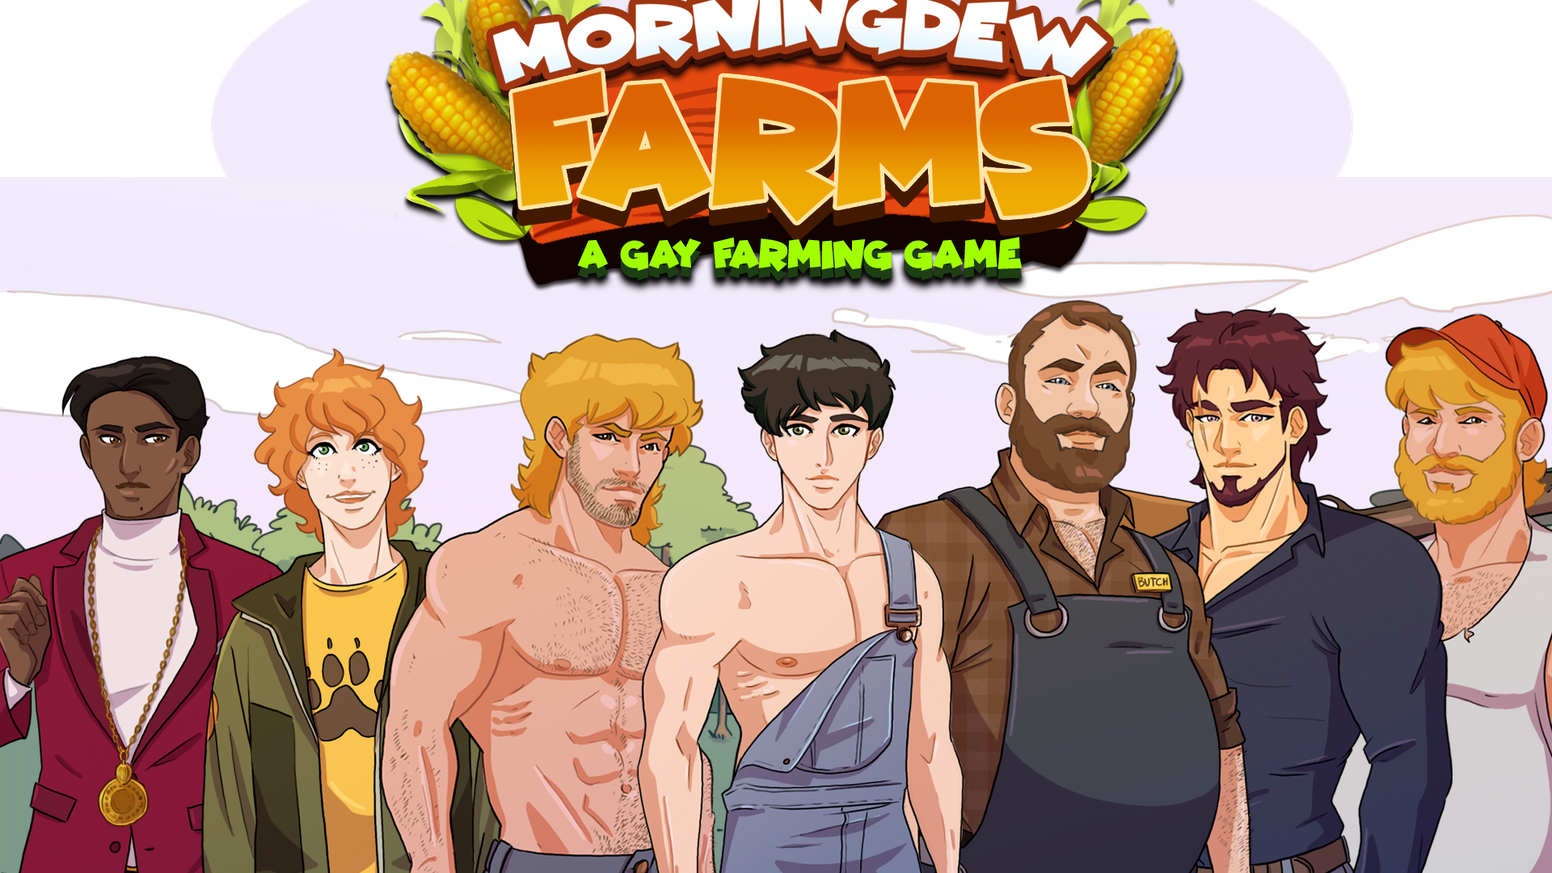 Bananas Porn Gay Money morningdew farms: an interactive gay farming visual novel